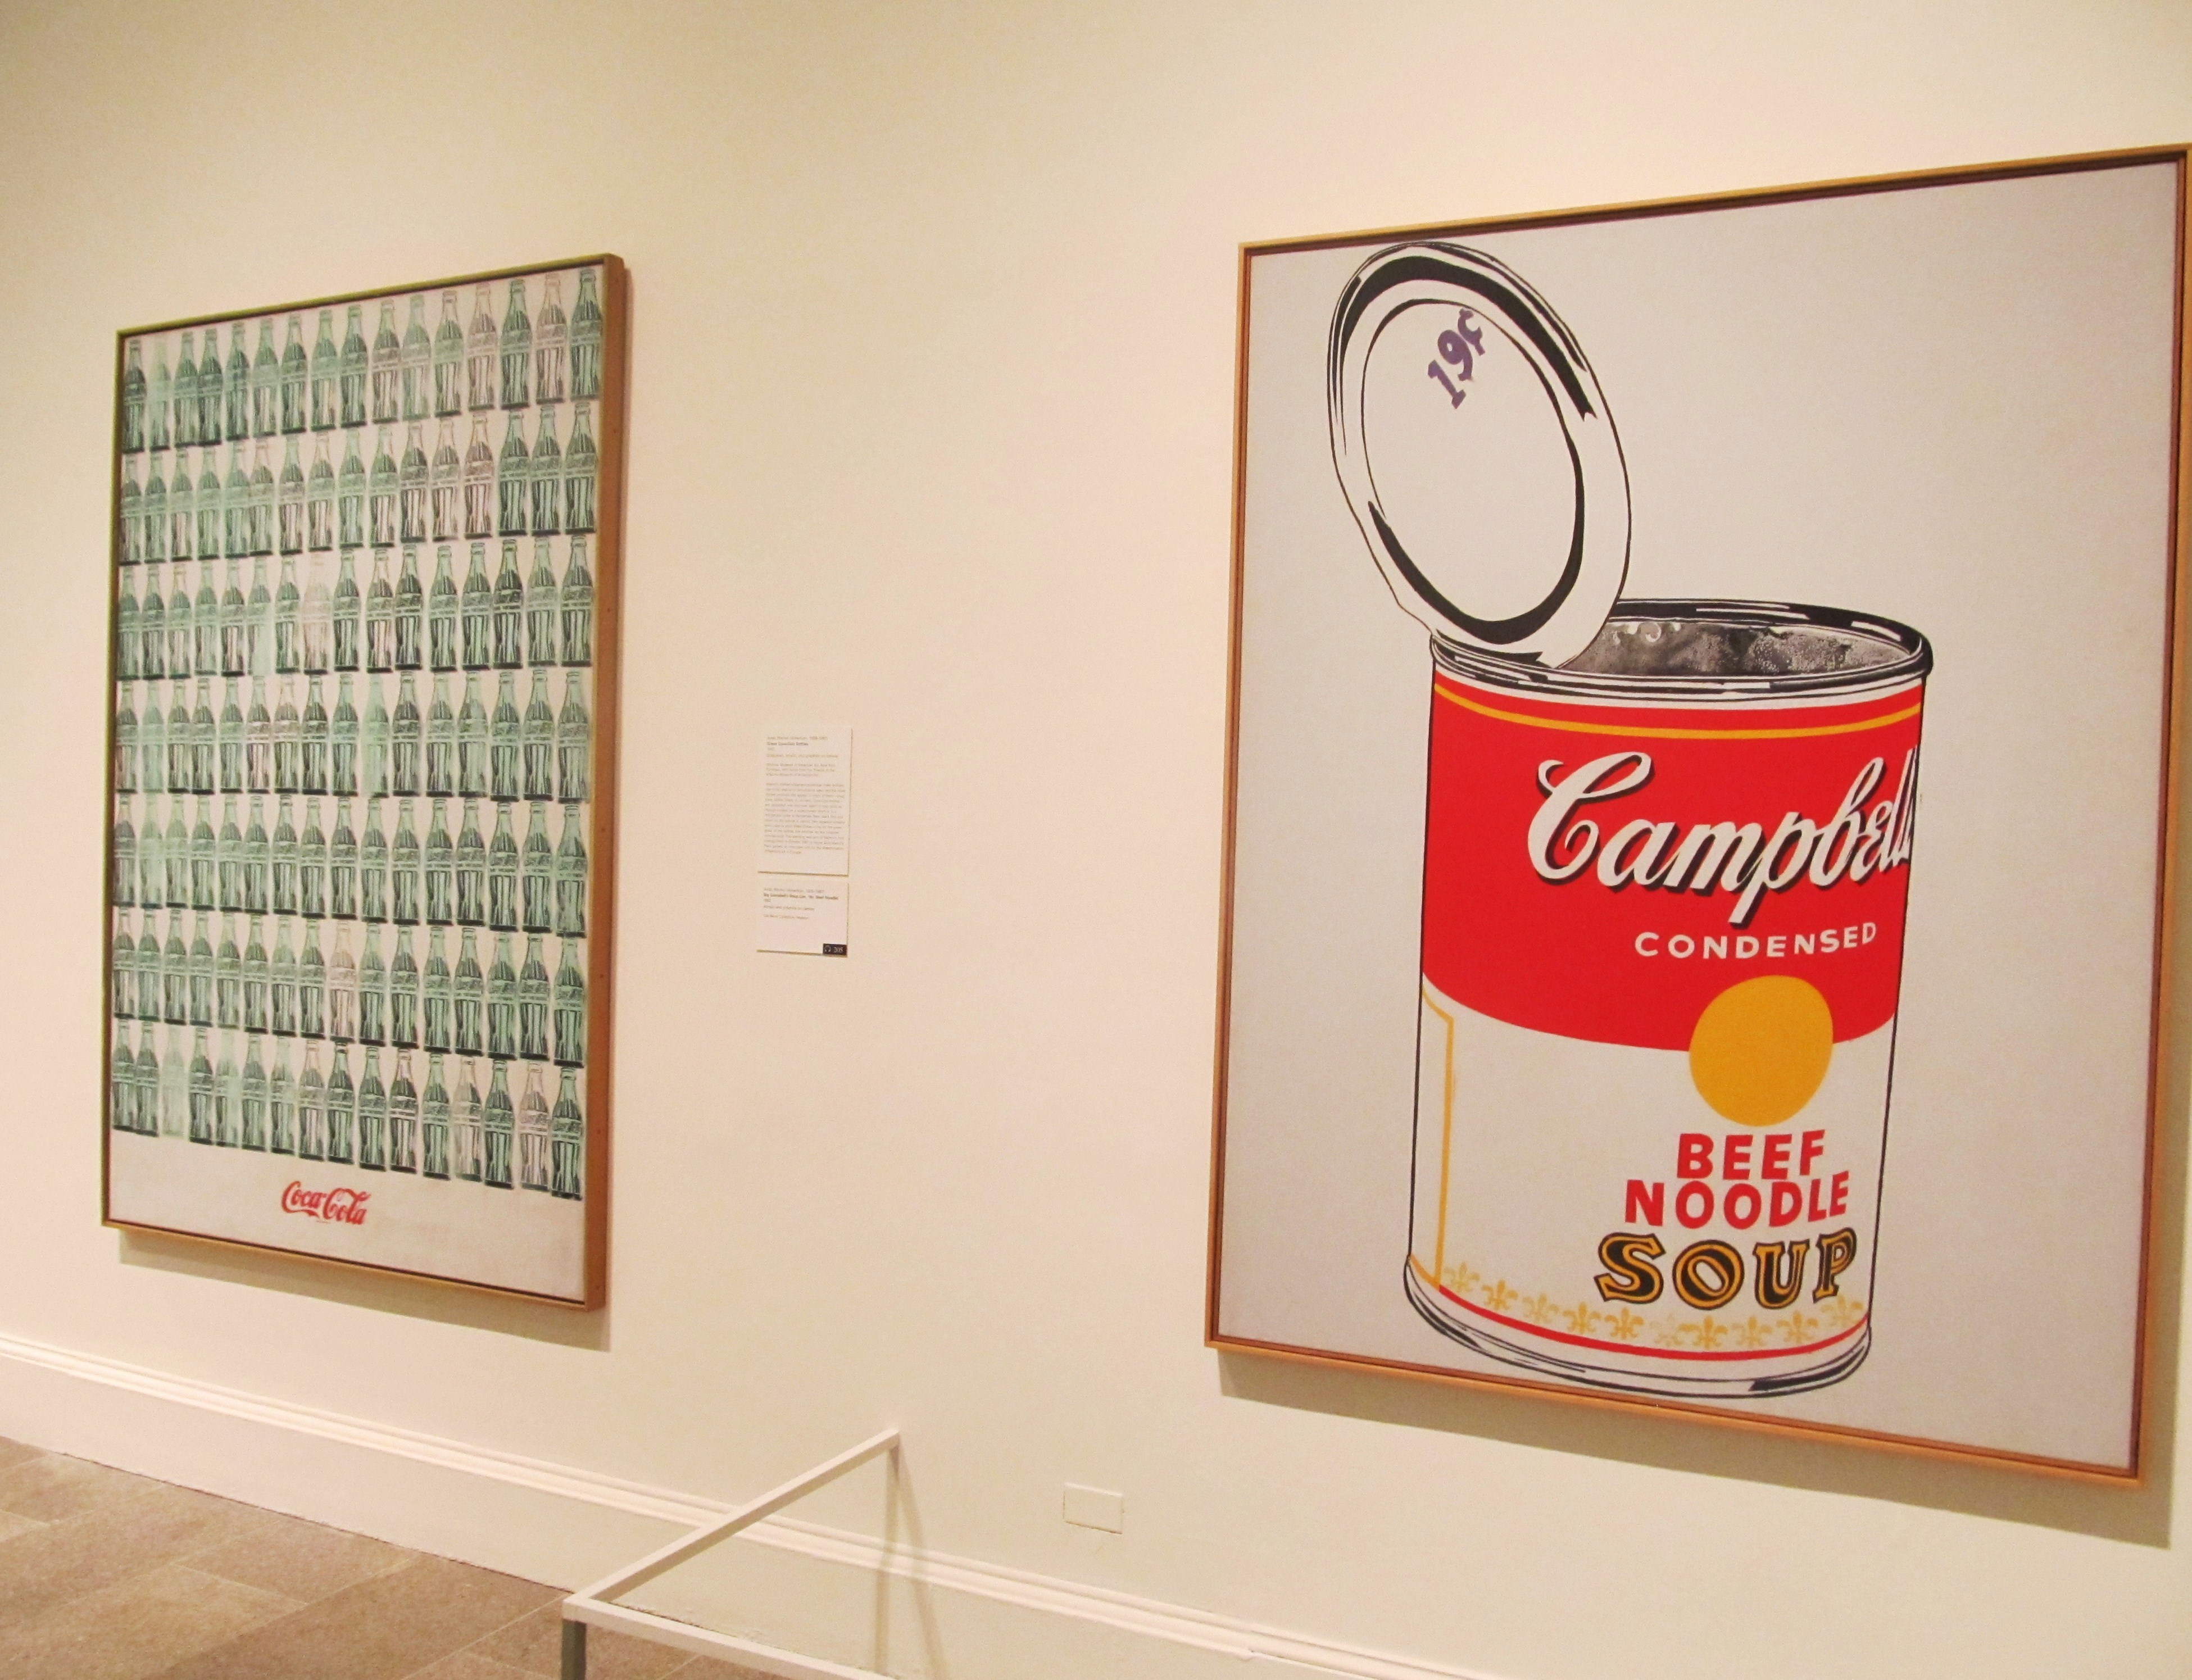 artist 2 andy warhol green coca cola bottles 1962 essay Andy warhol paper whorl's flowers, 1967, silkscreen on synthetic polymer paint on canvas, is included in the exhibition flowers were quite an inspiration for warhol time and again.